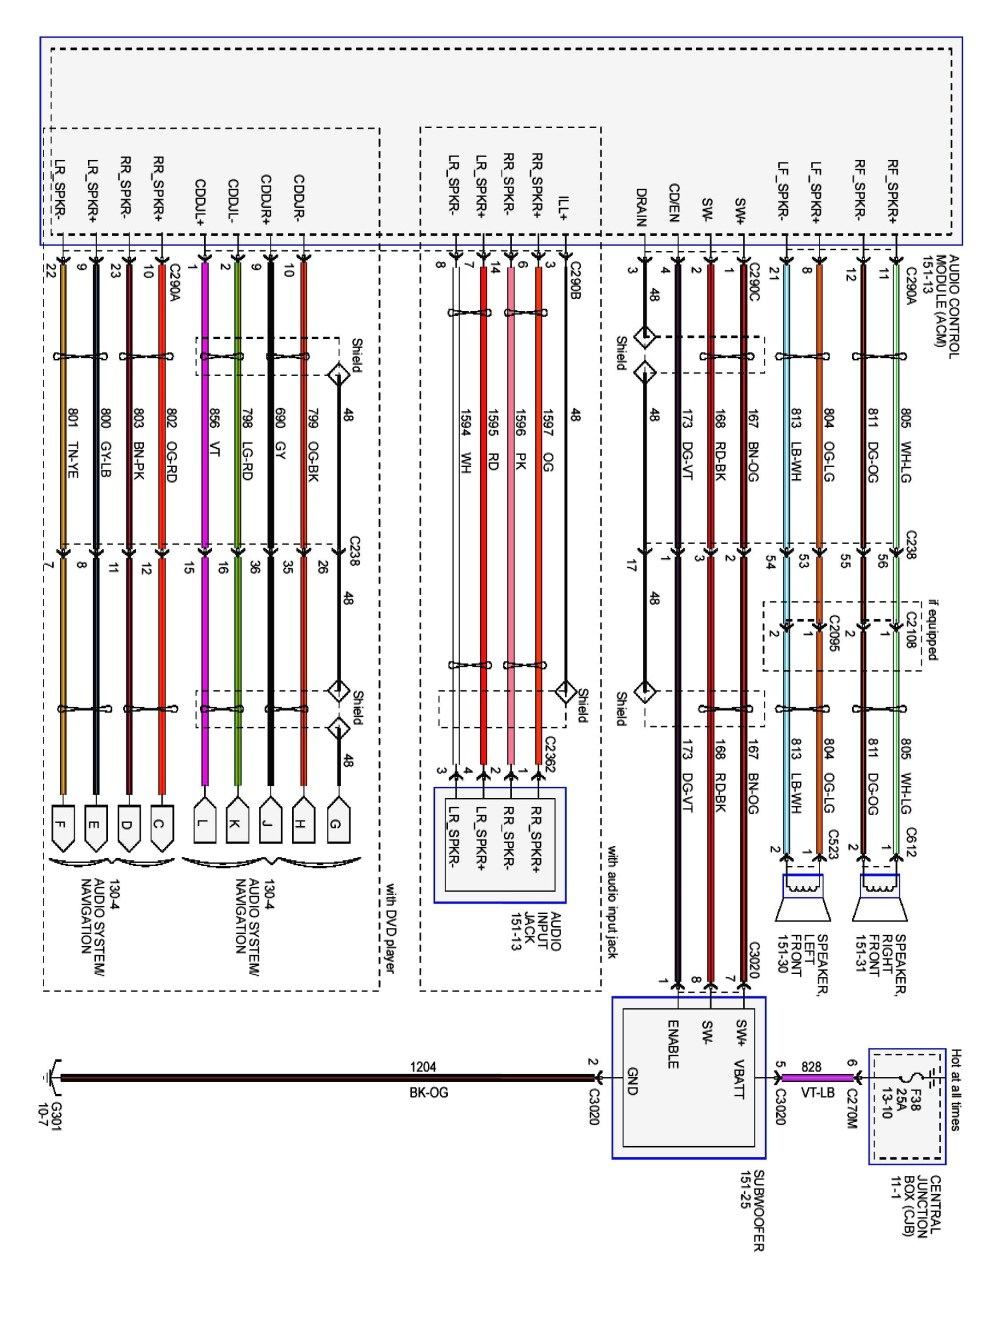 medium resolution of 2004 f550 fuse diagram schematics wiring diagrams u2022 rh orwellvets co 04 ford f550 fuse panel